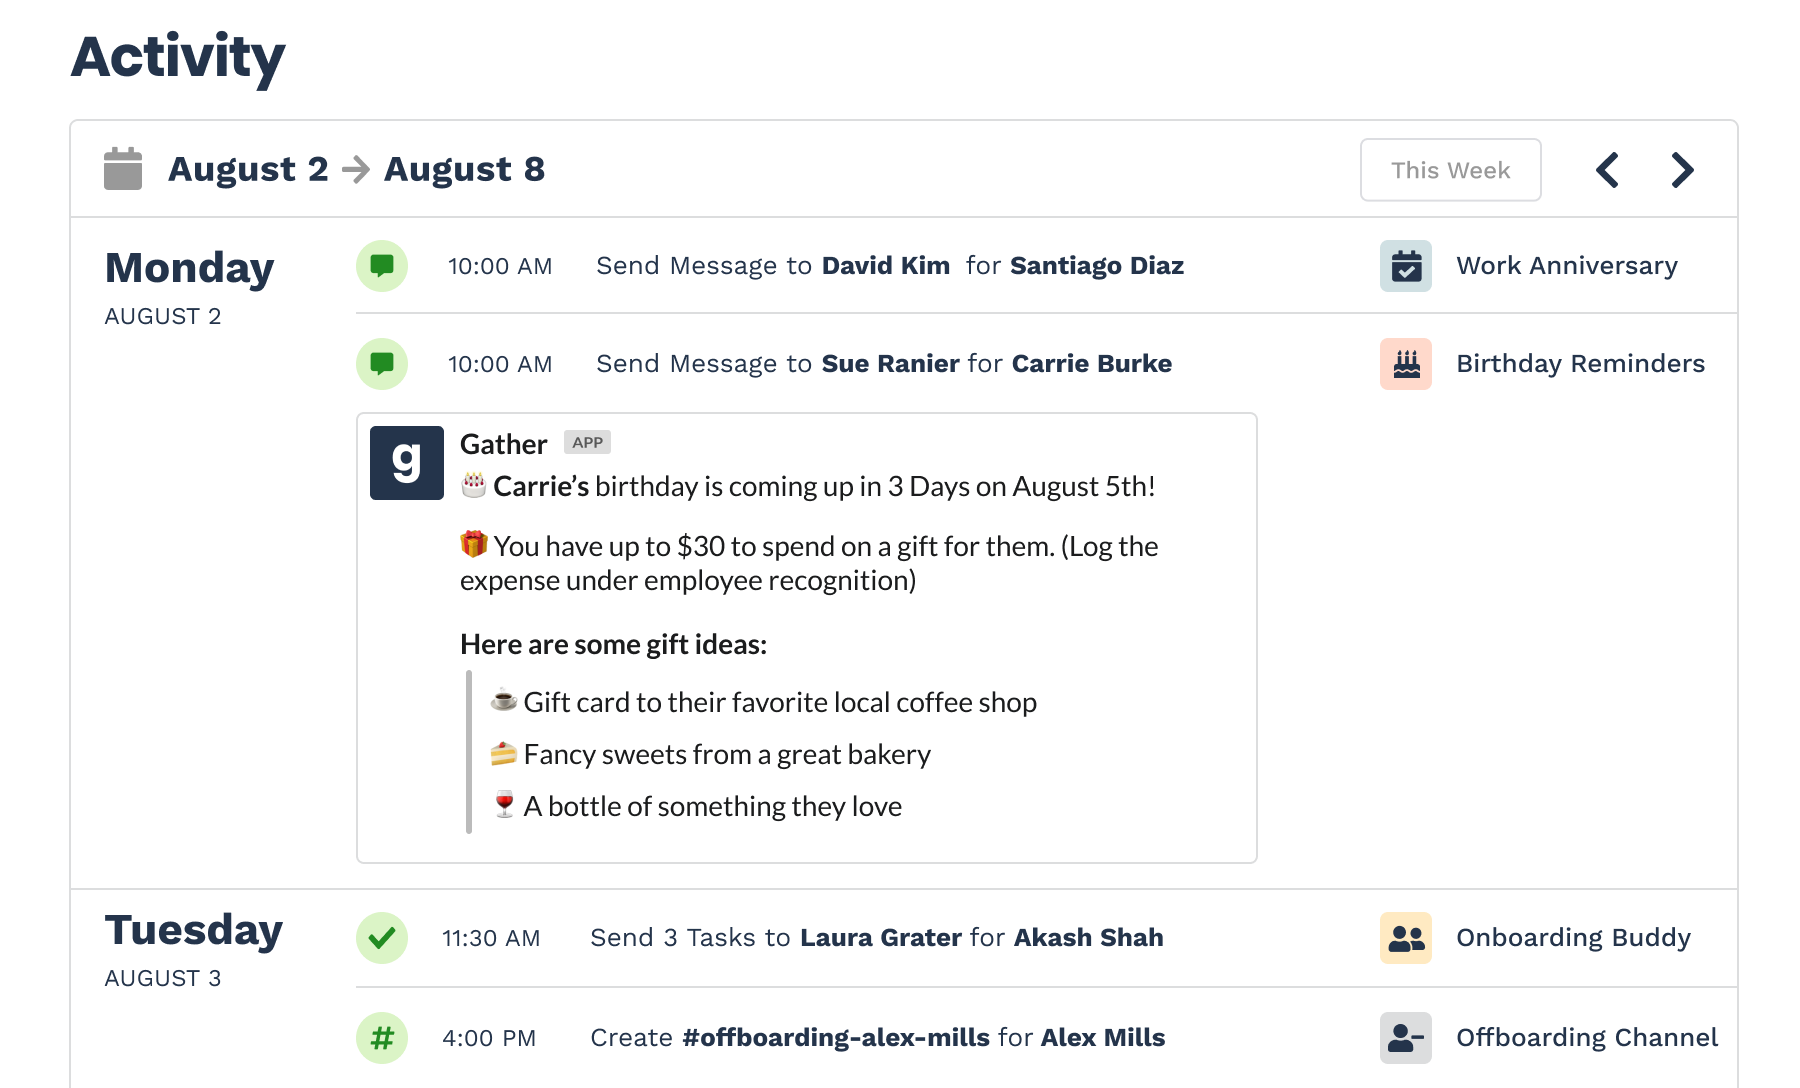 Gather activity page